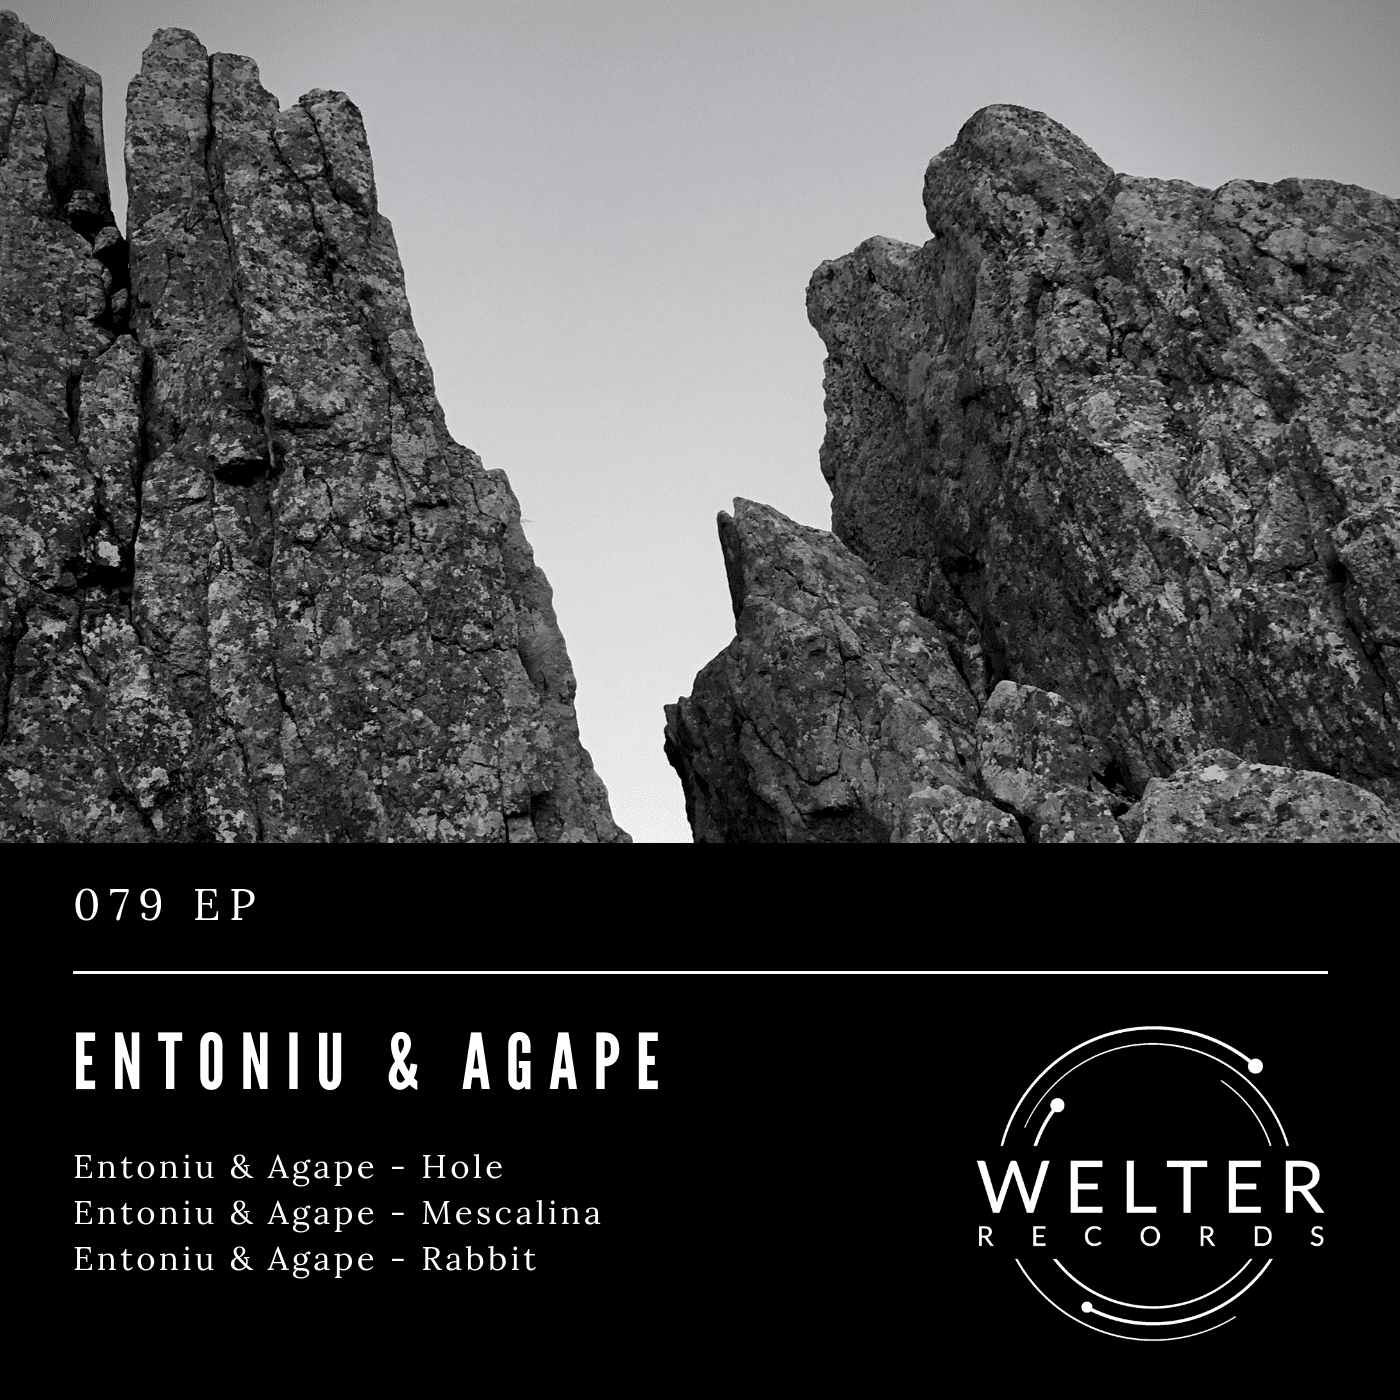 Entoniu & Agape - 079 EP [Welter Records]